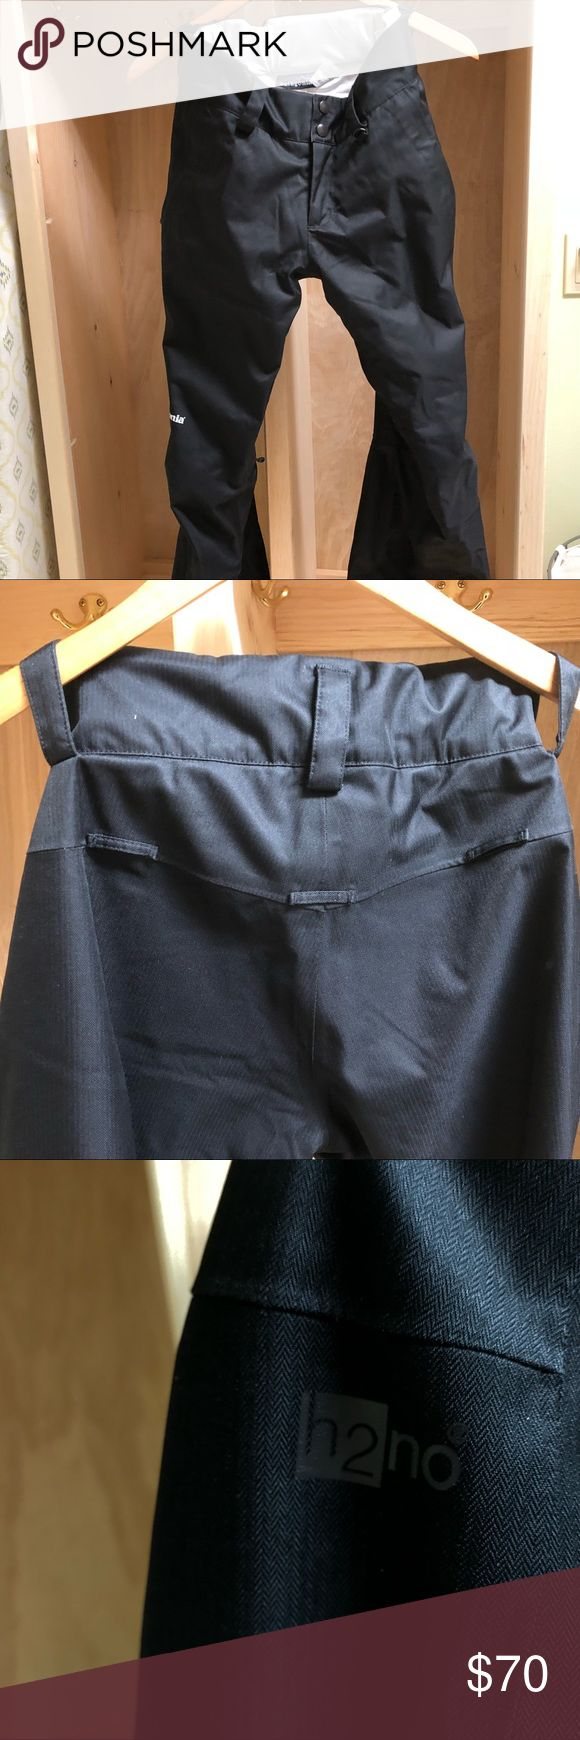 Killer Patagonia ski pants in classic black Incredible Patagonia ski pants designed to allow for movement without adding a ton of bulk. They look new except for the wear along the cuffs. Pockets and super handy inner thigh zippers for venting on warmer days on the mountain! Patagonia Pants